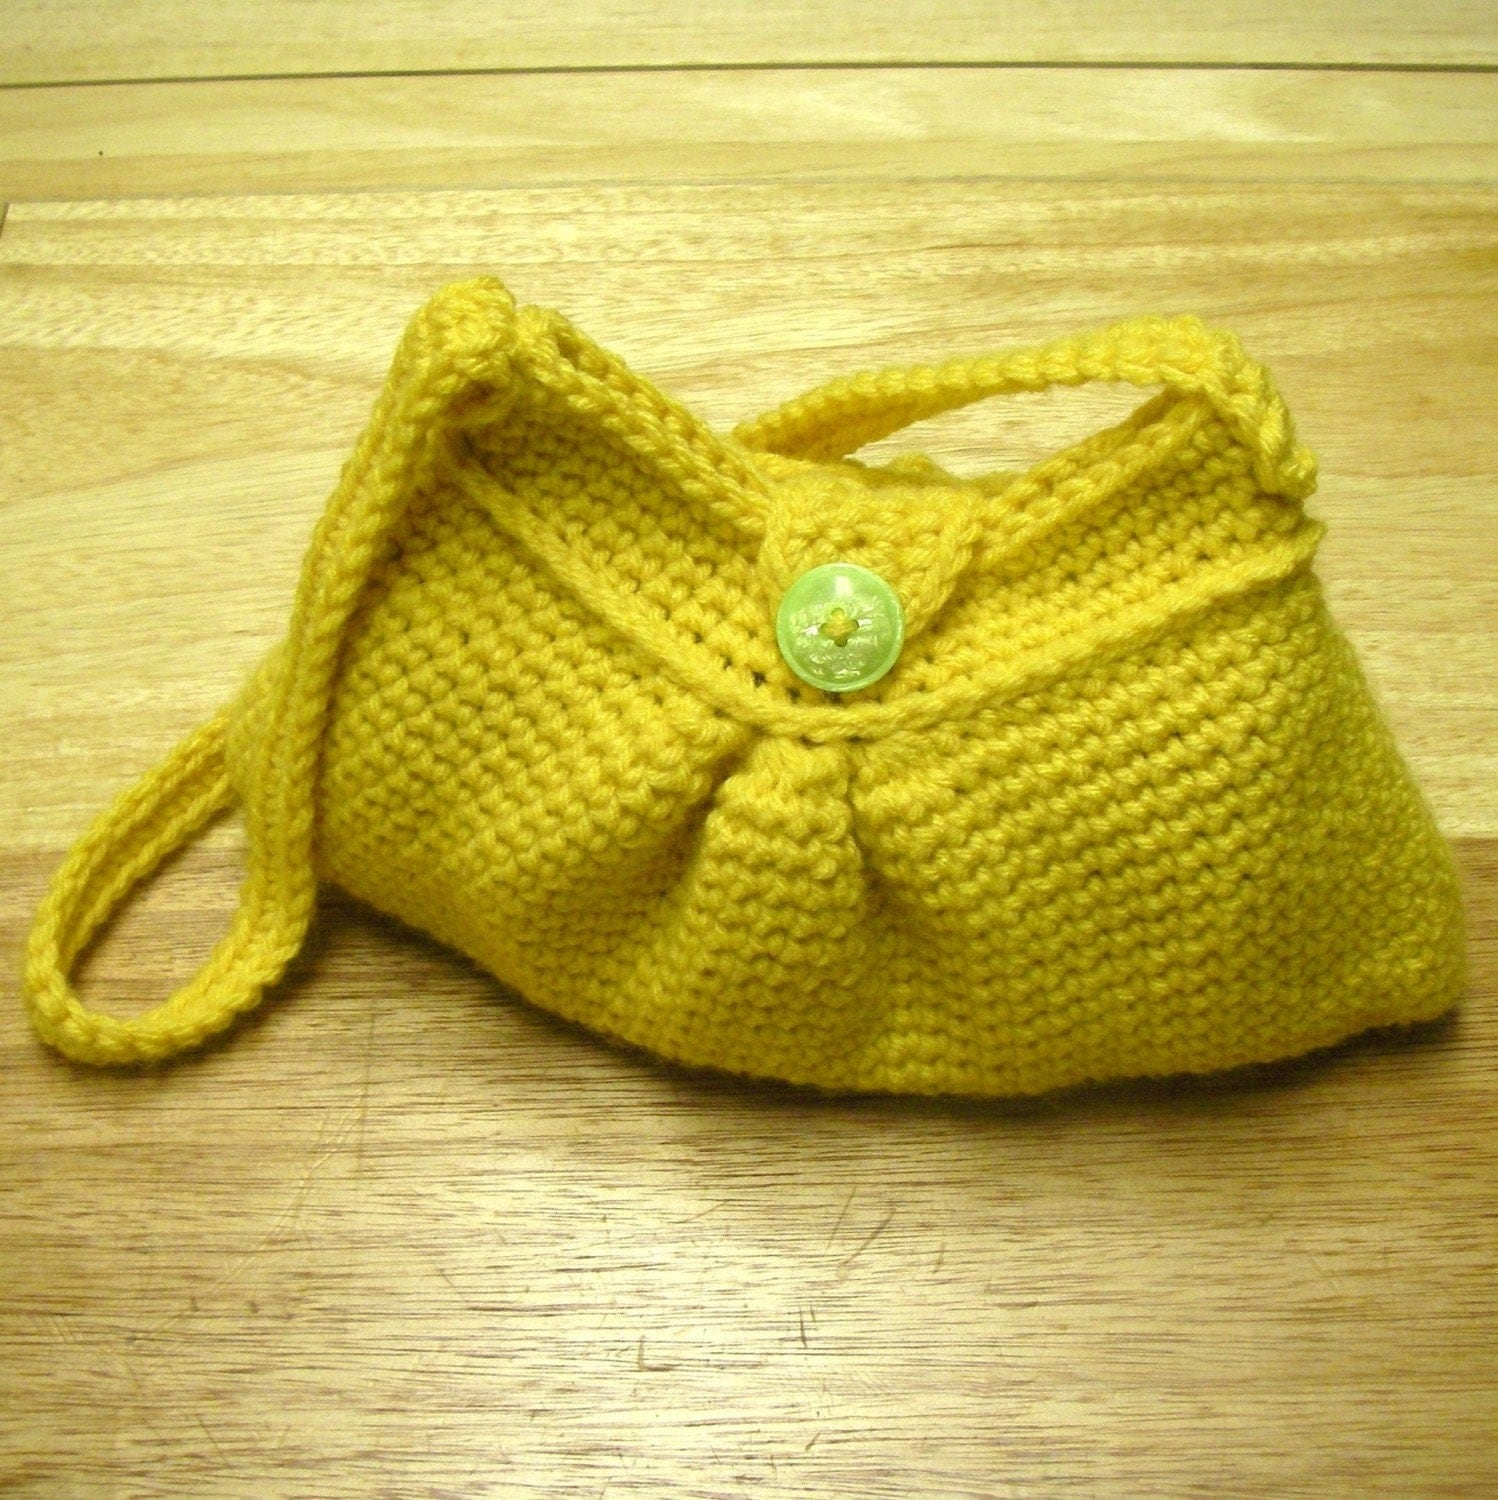 Crochet Simple Bag : Instant Download Crochet Pattern Easy Pleated Bag by Mamachee